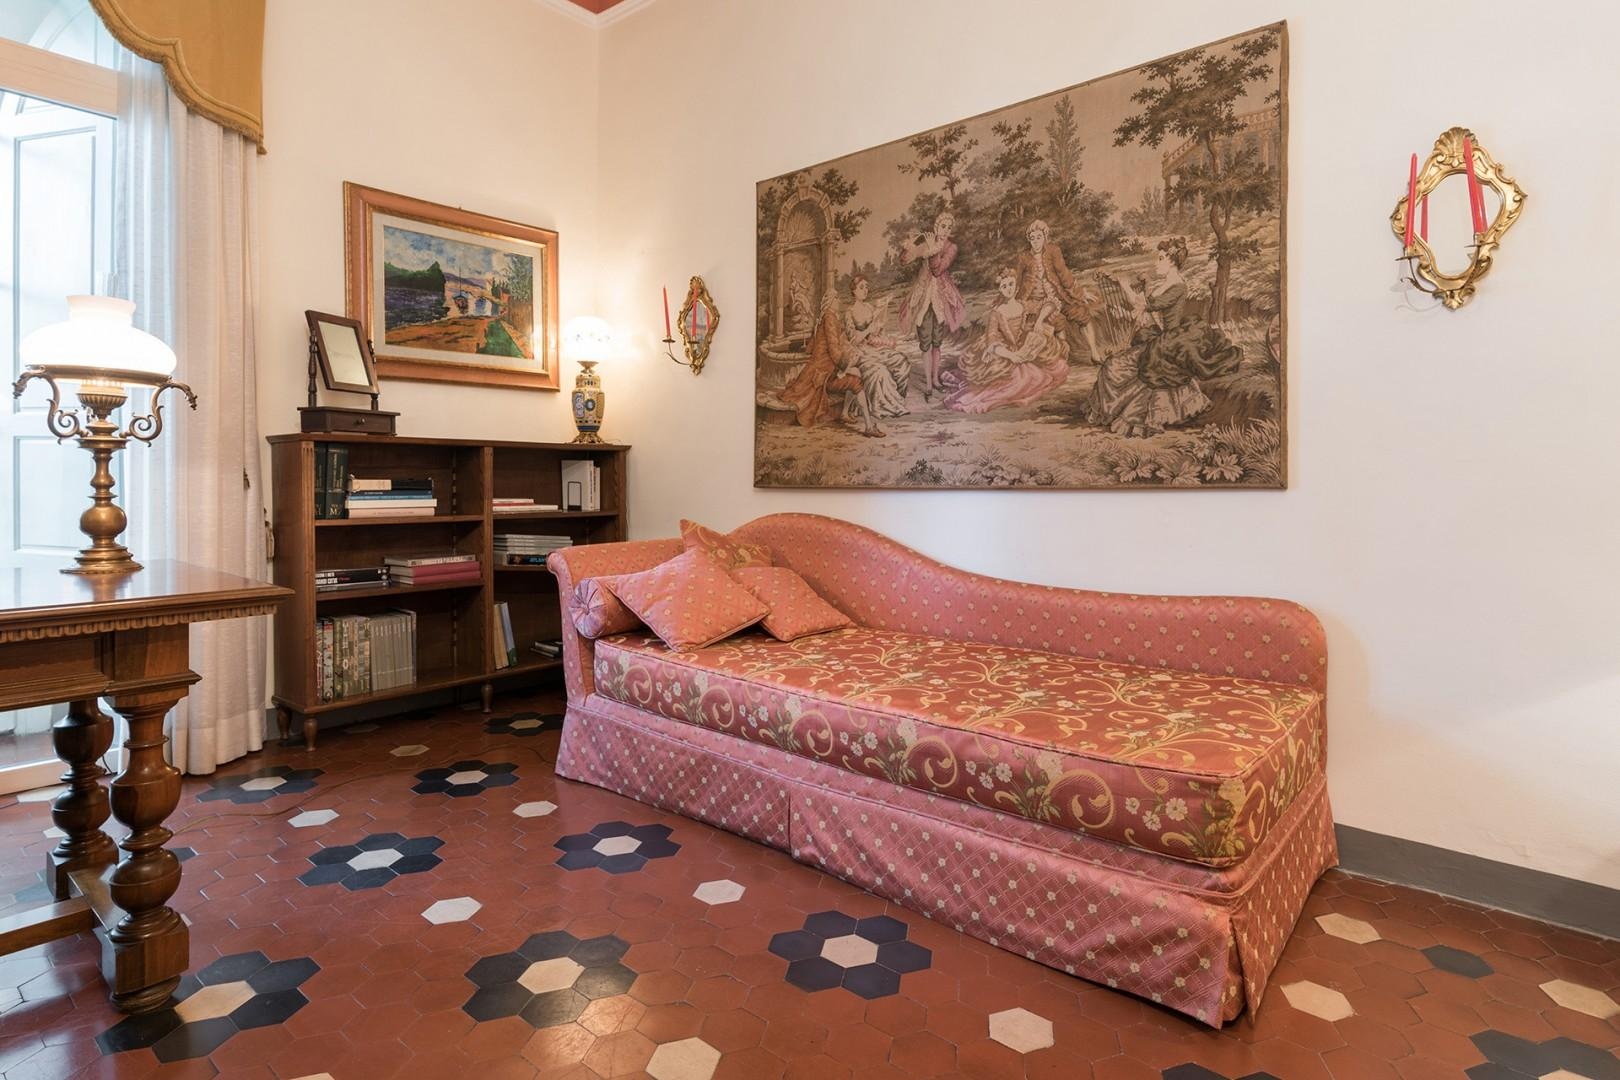 In the bedroom there is also a chaise lounge-style bed for one.